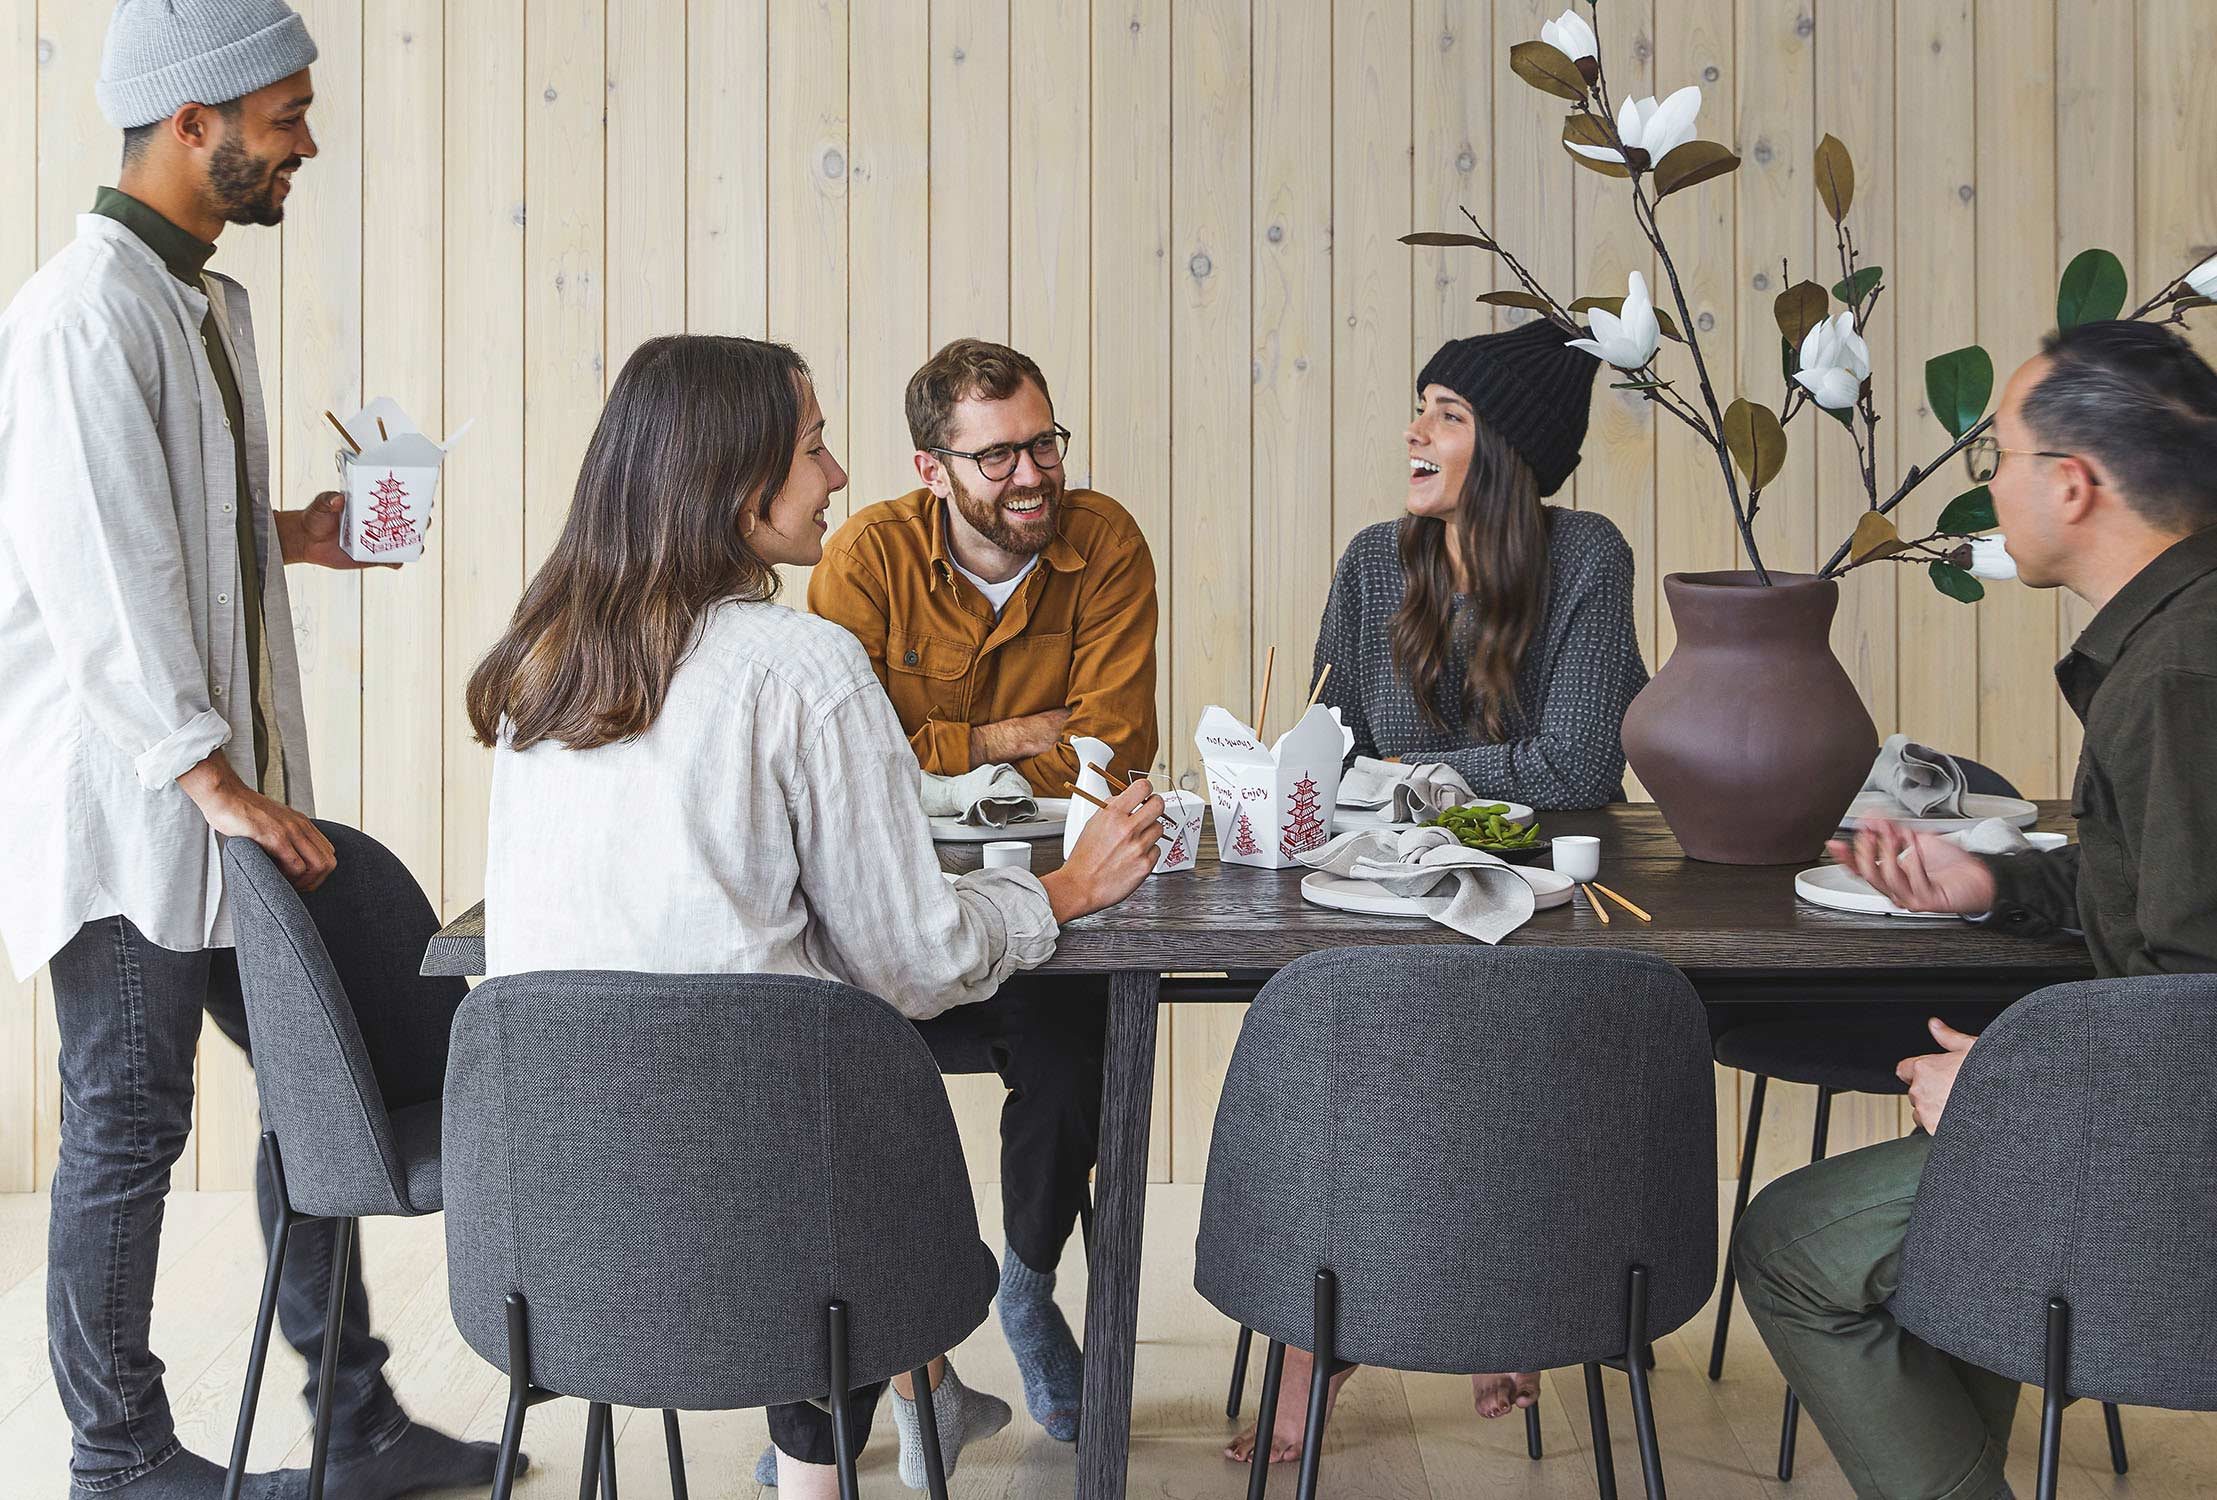 Cute people in toques gather around a dark wood table. Some are standing, most are seated in gray upholstered chairs.